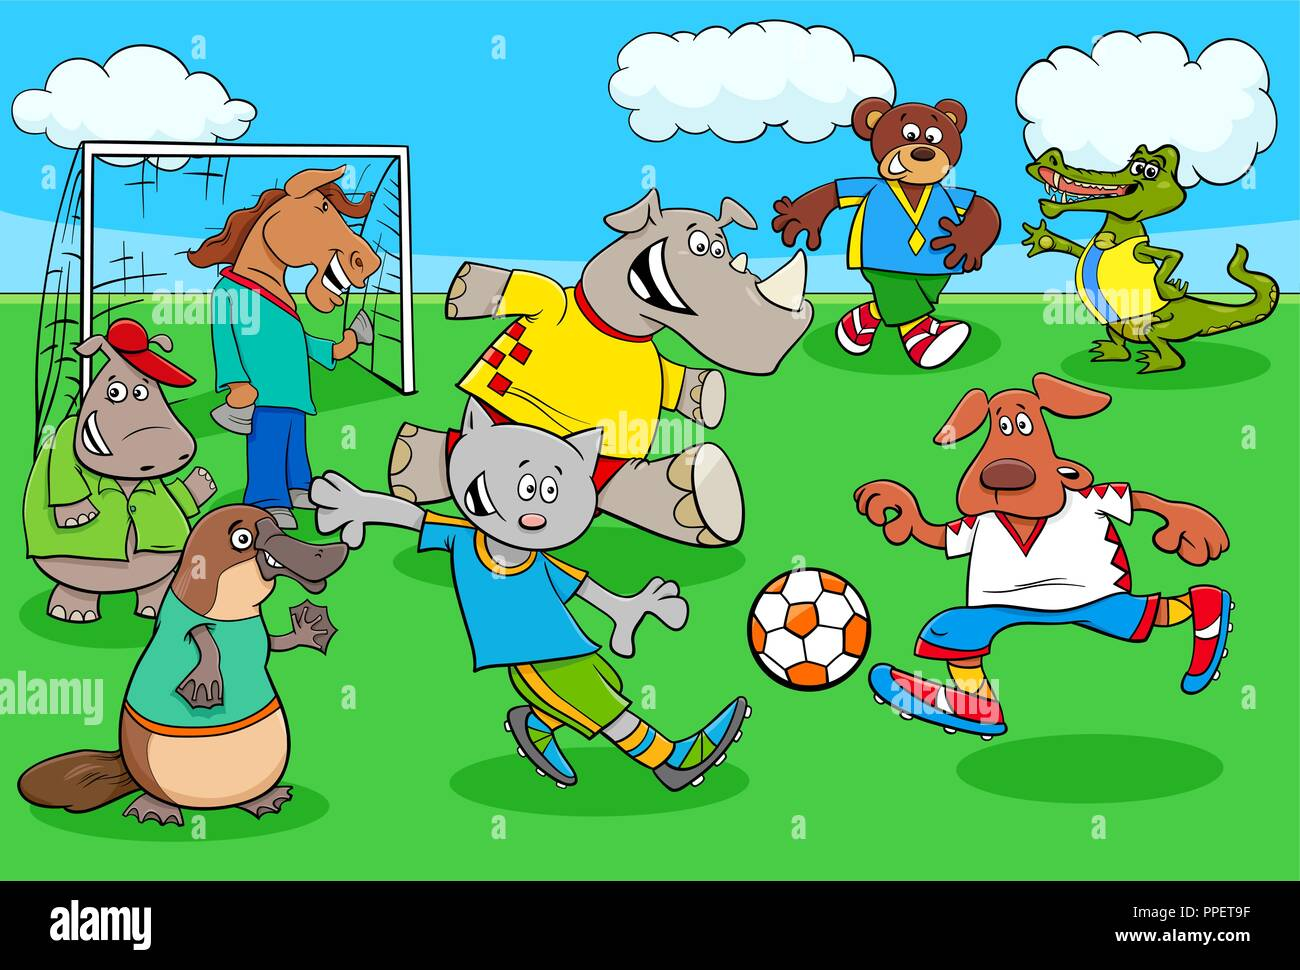 Cartoon Illustrations of Animal Football or Soccer Player Characters Playing Match - Stock Vector